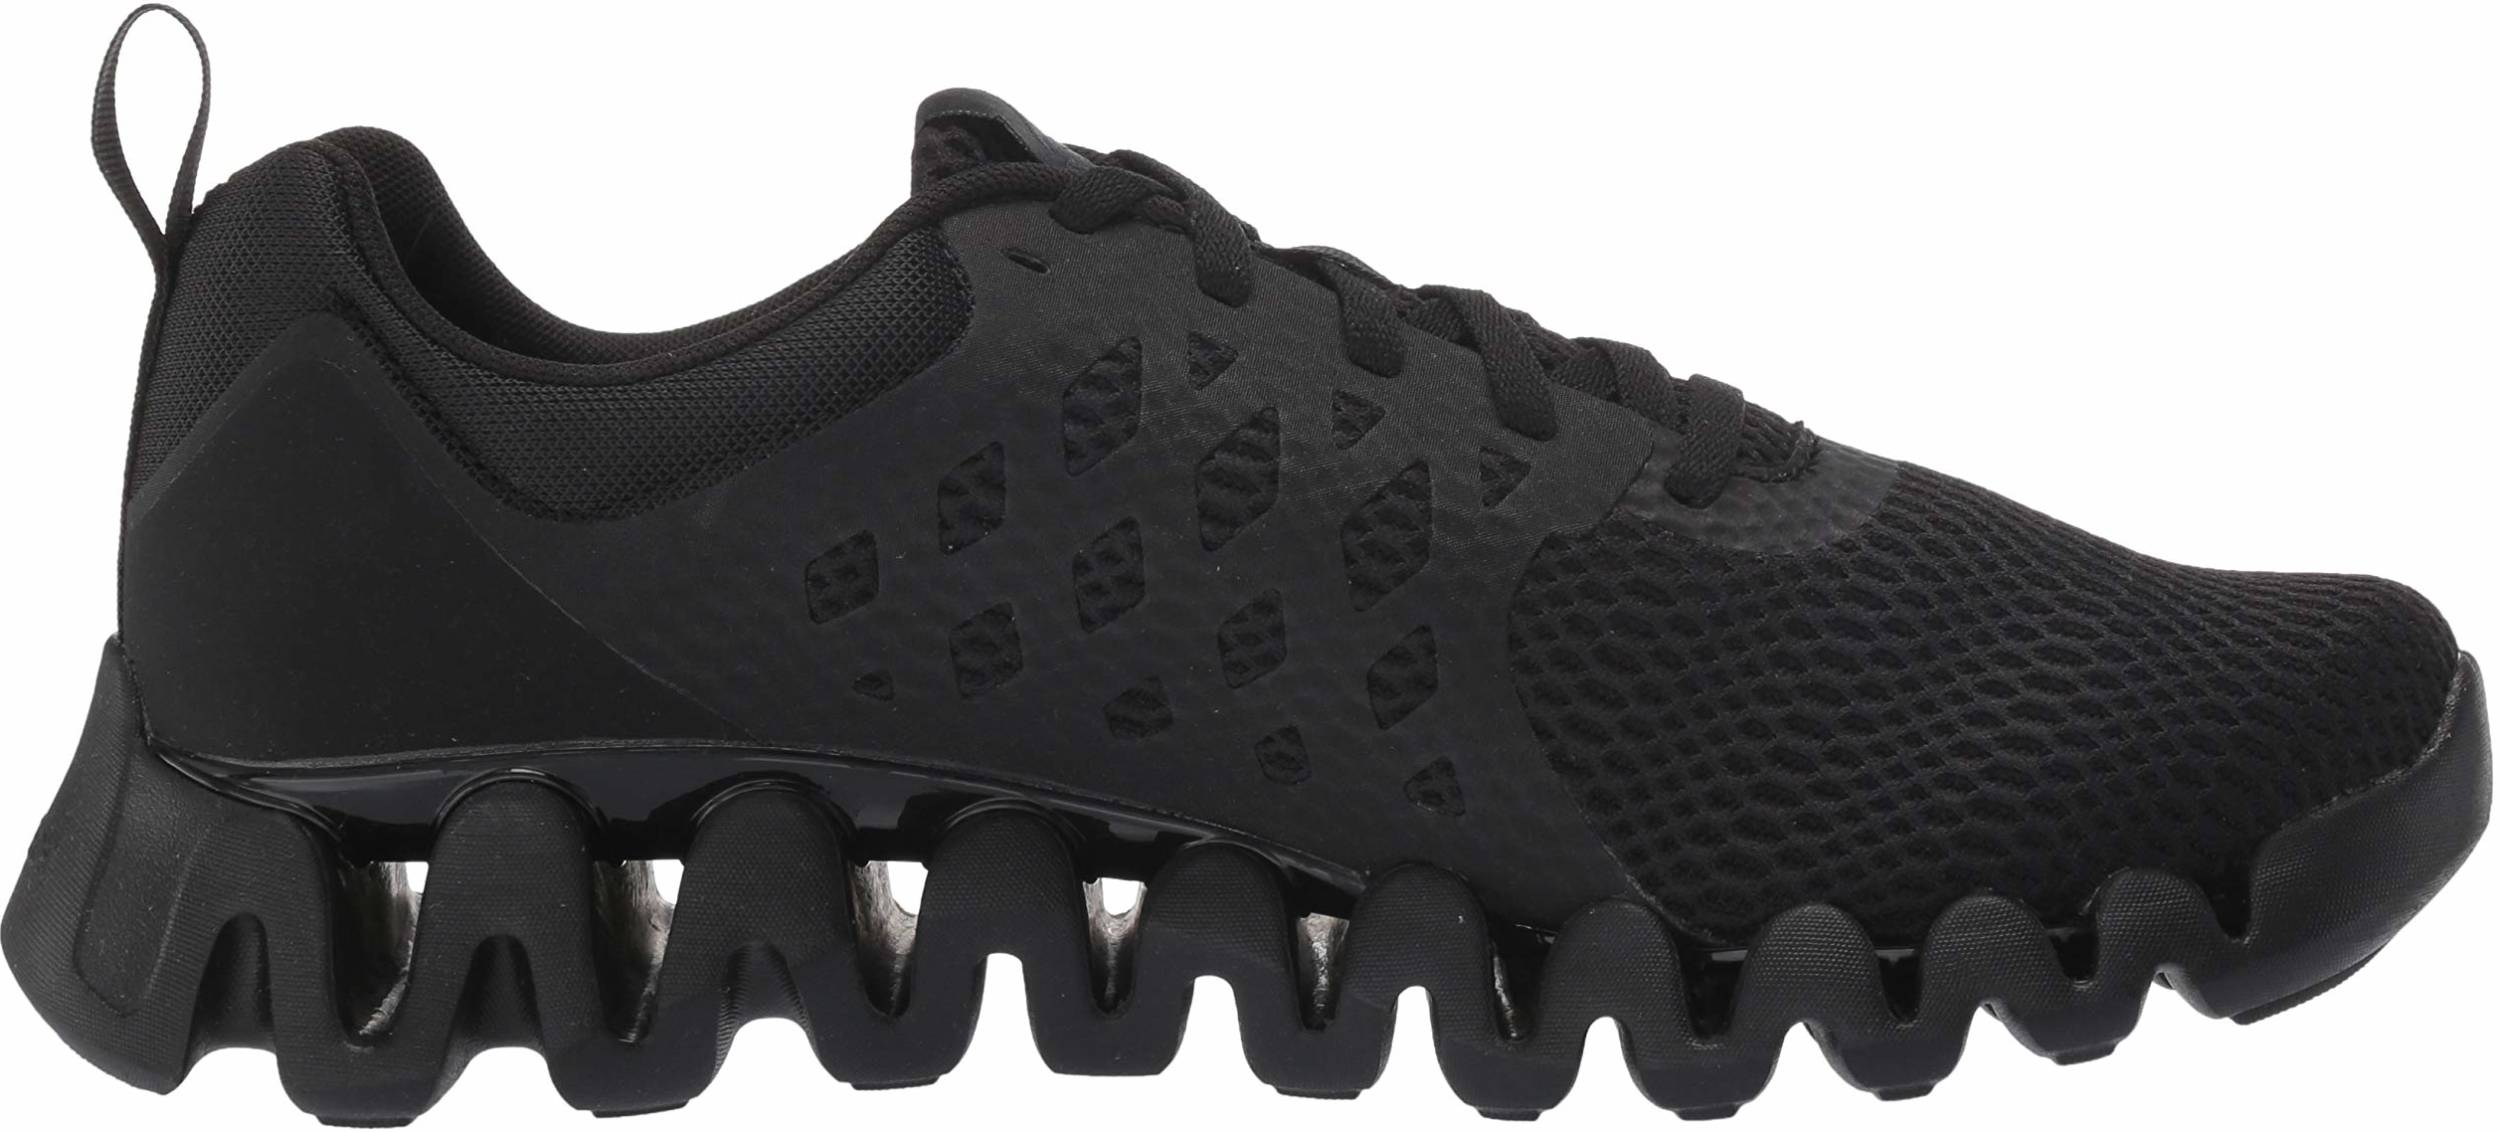 Save 52% on Reebok Running Shoes (120